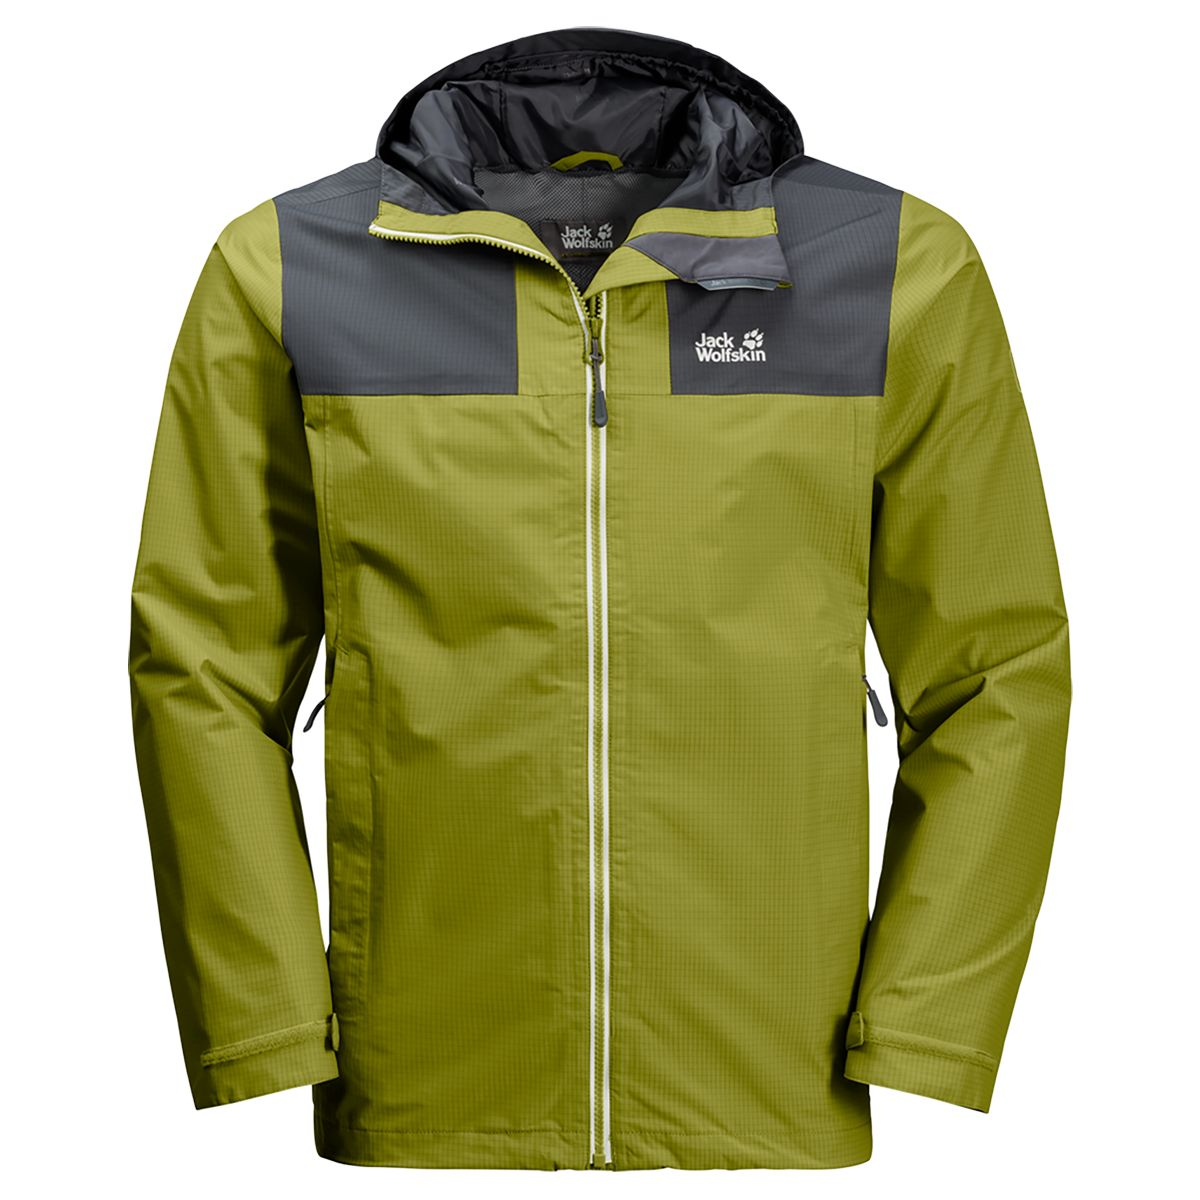 JASPER PEAK JACKET M men's jacket